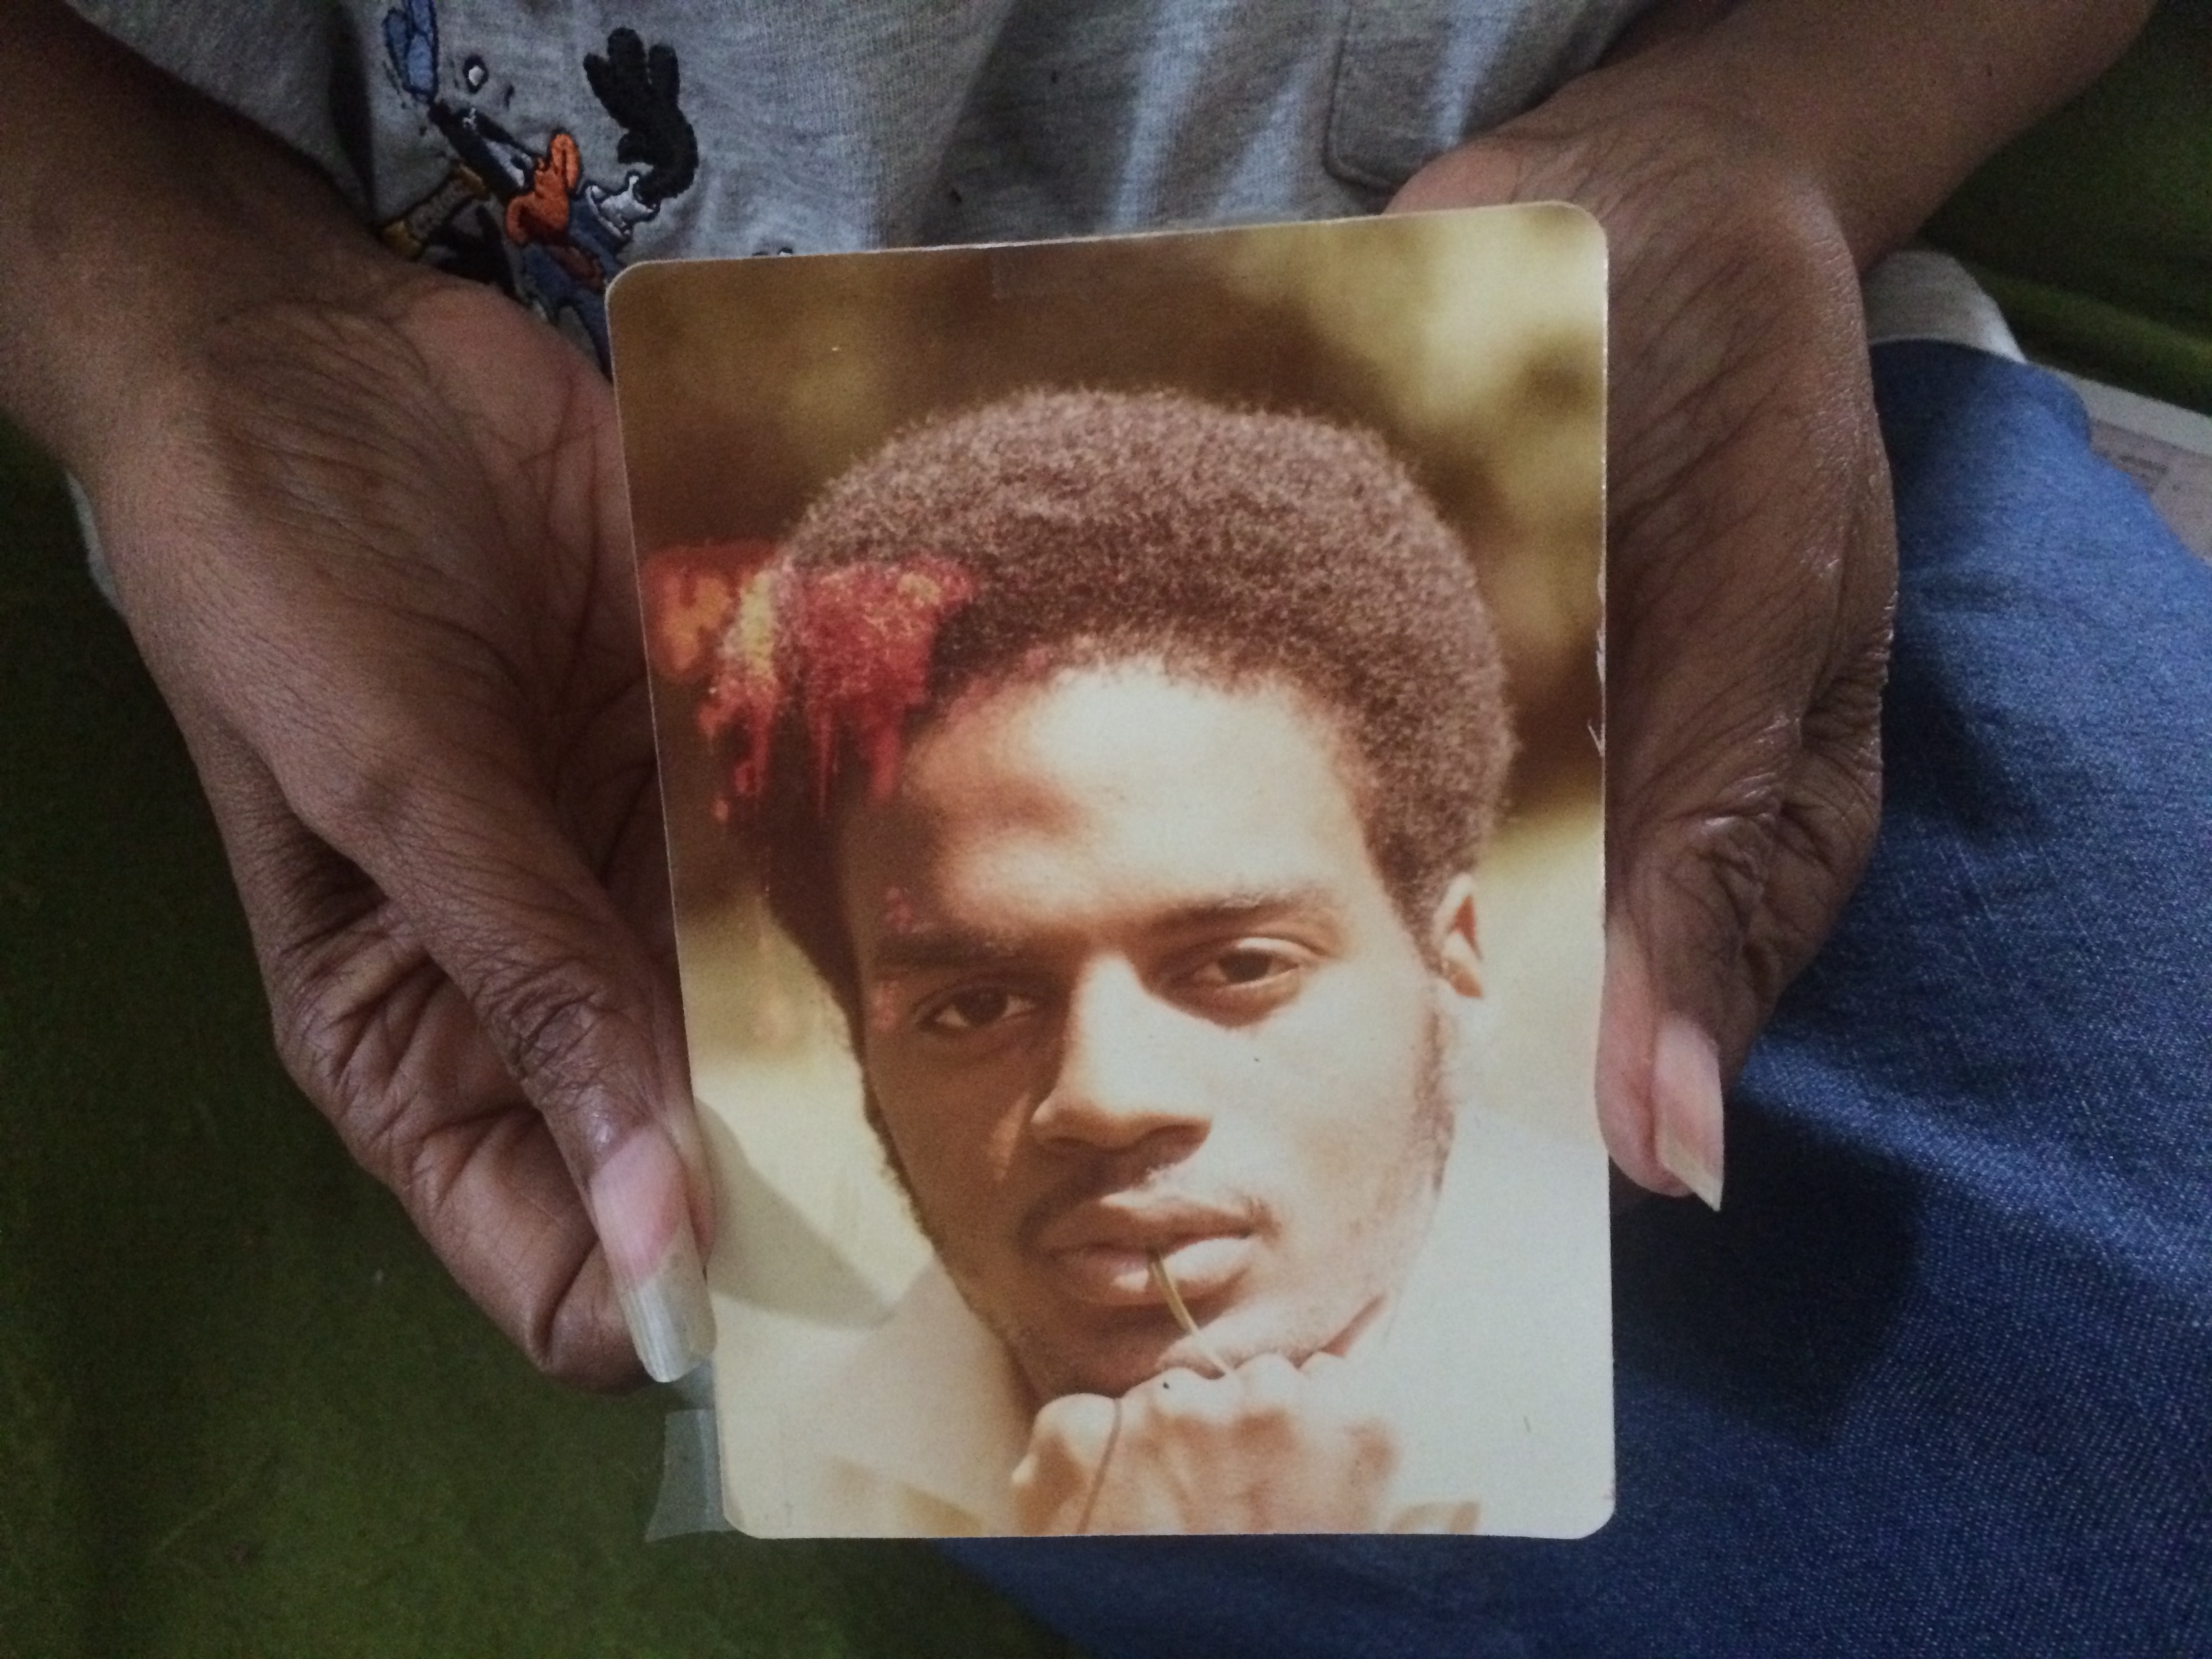 Delores Howard holds a photograph of her son, Wallie Howard Jr., a Syracuse police investigator killed in the line of duty, Oct. 30, 1990 (Sean Kirst/Submitted image)